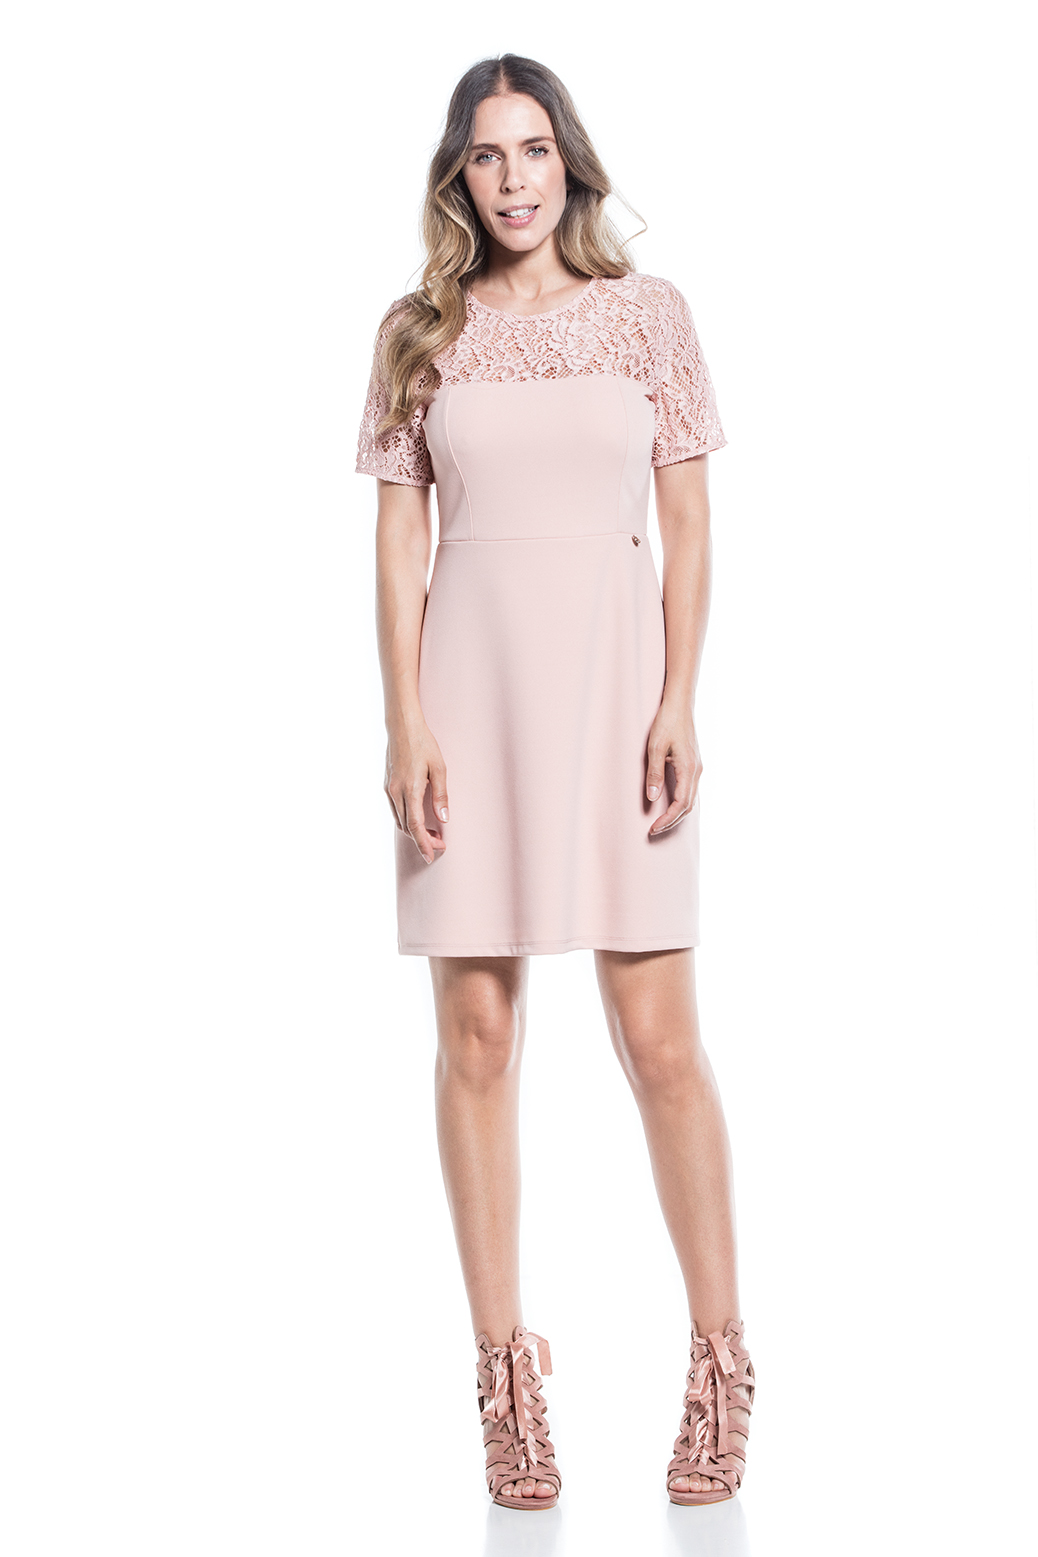 Structured dress with lace trim